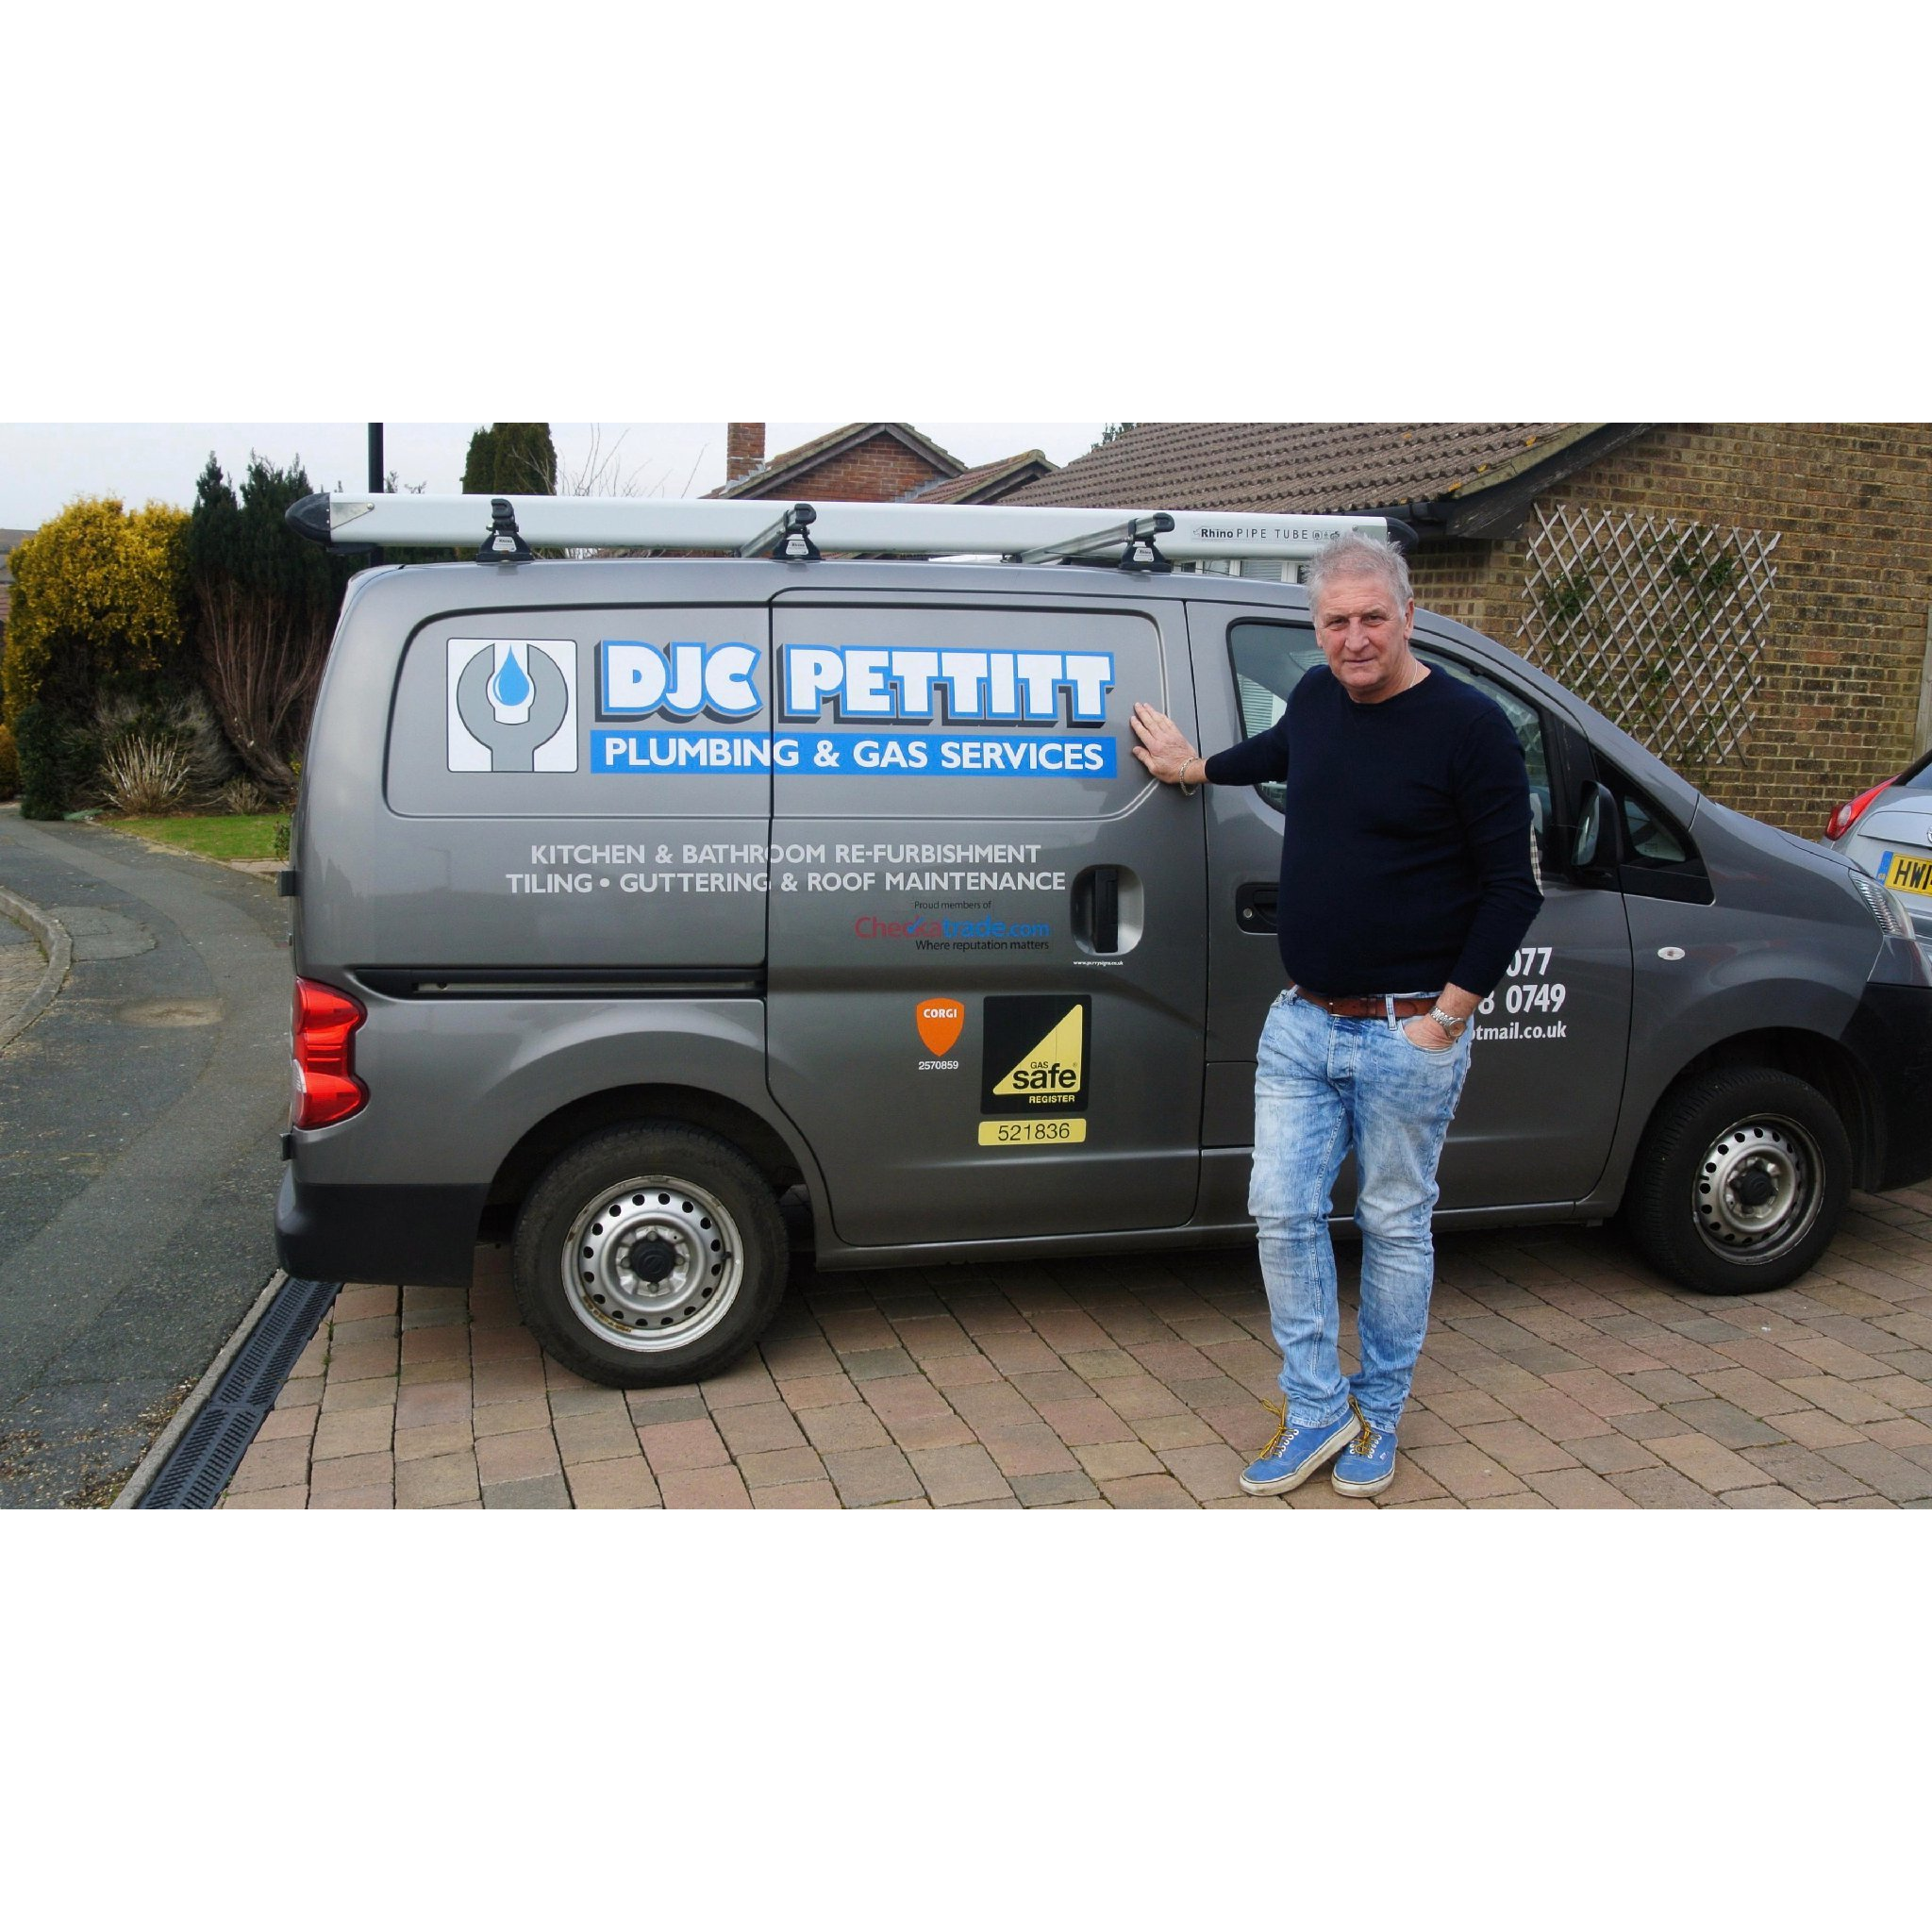 image of DJC Pettitt Plumbing & Gas Services